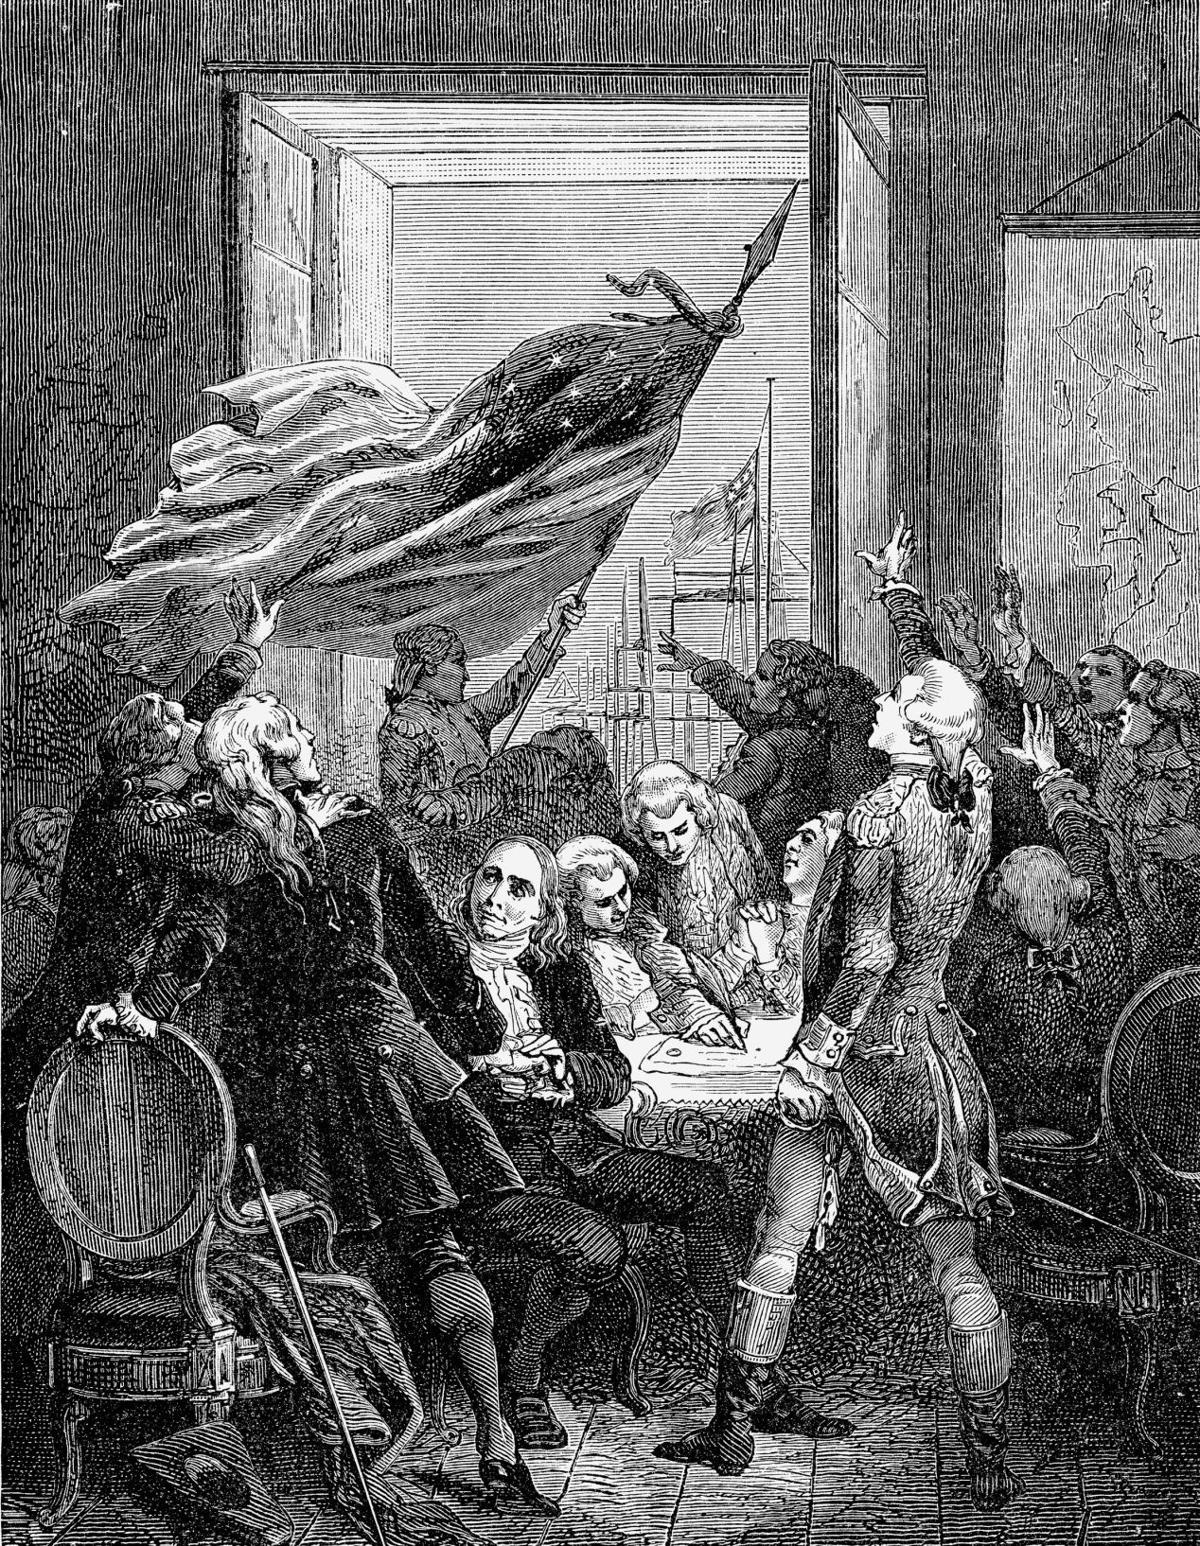 Engraving of the signing of the Declaration of Independence